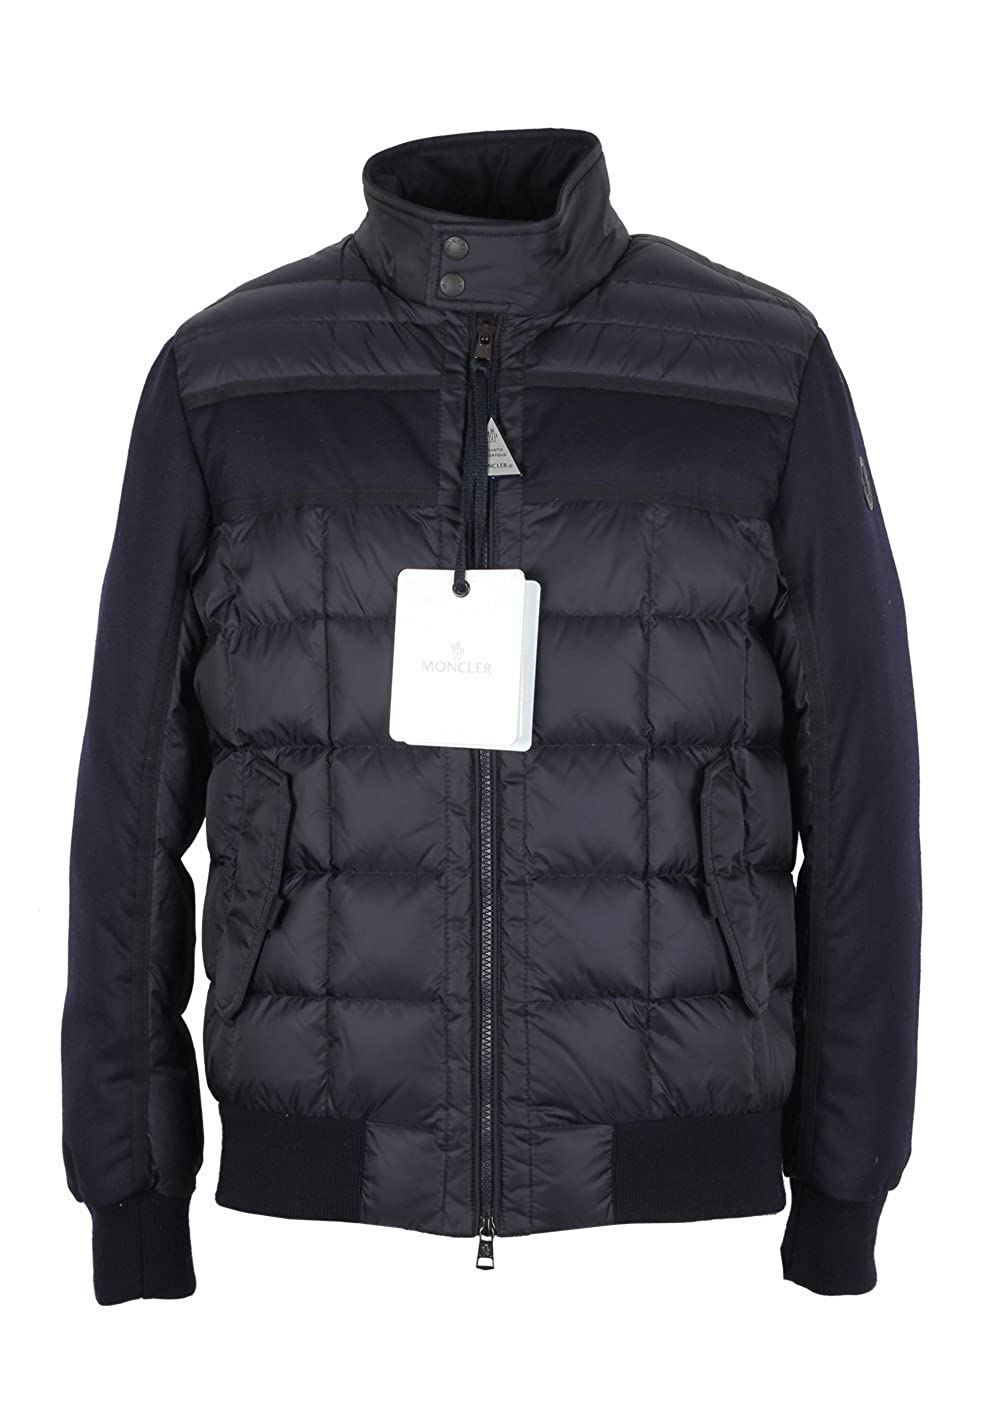 MONCLER Cl Blue Aramis Quilted Down Jacket Coat Size 1 / S / 46/36 U.S.: Amazon.es: Ropa y accesorios